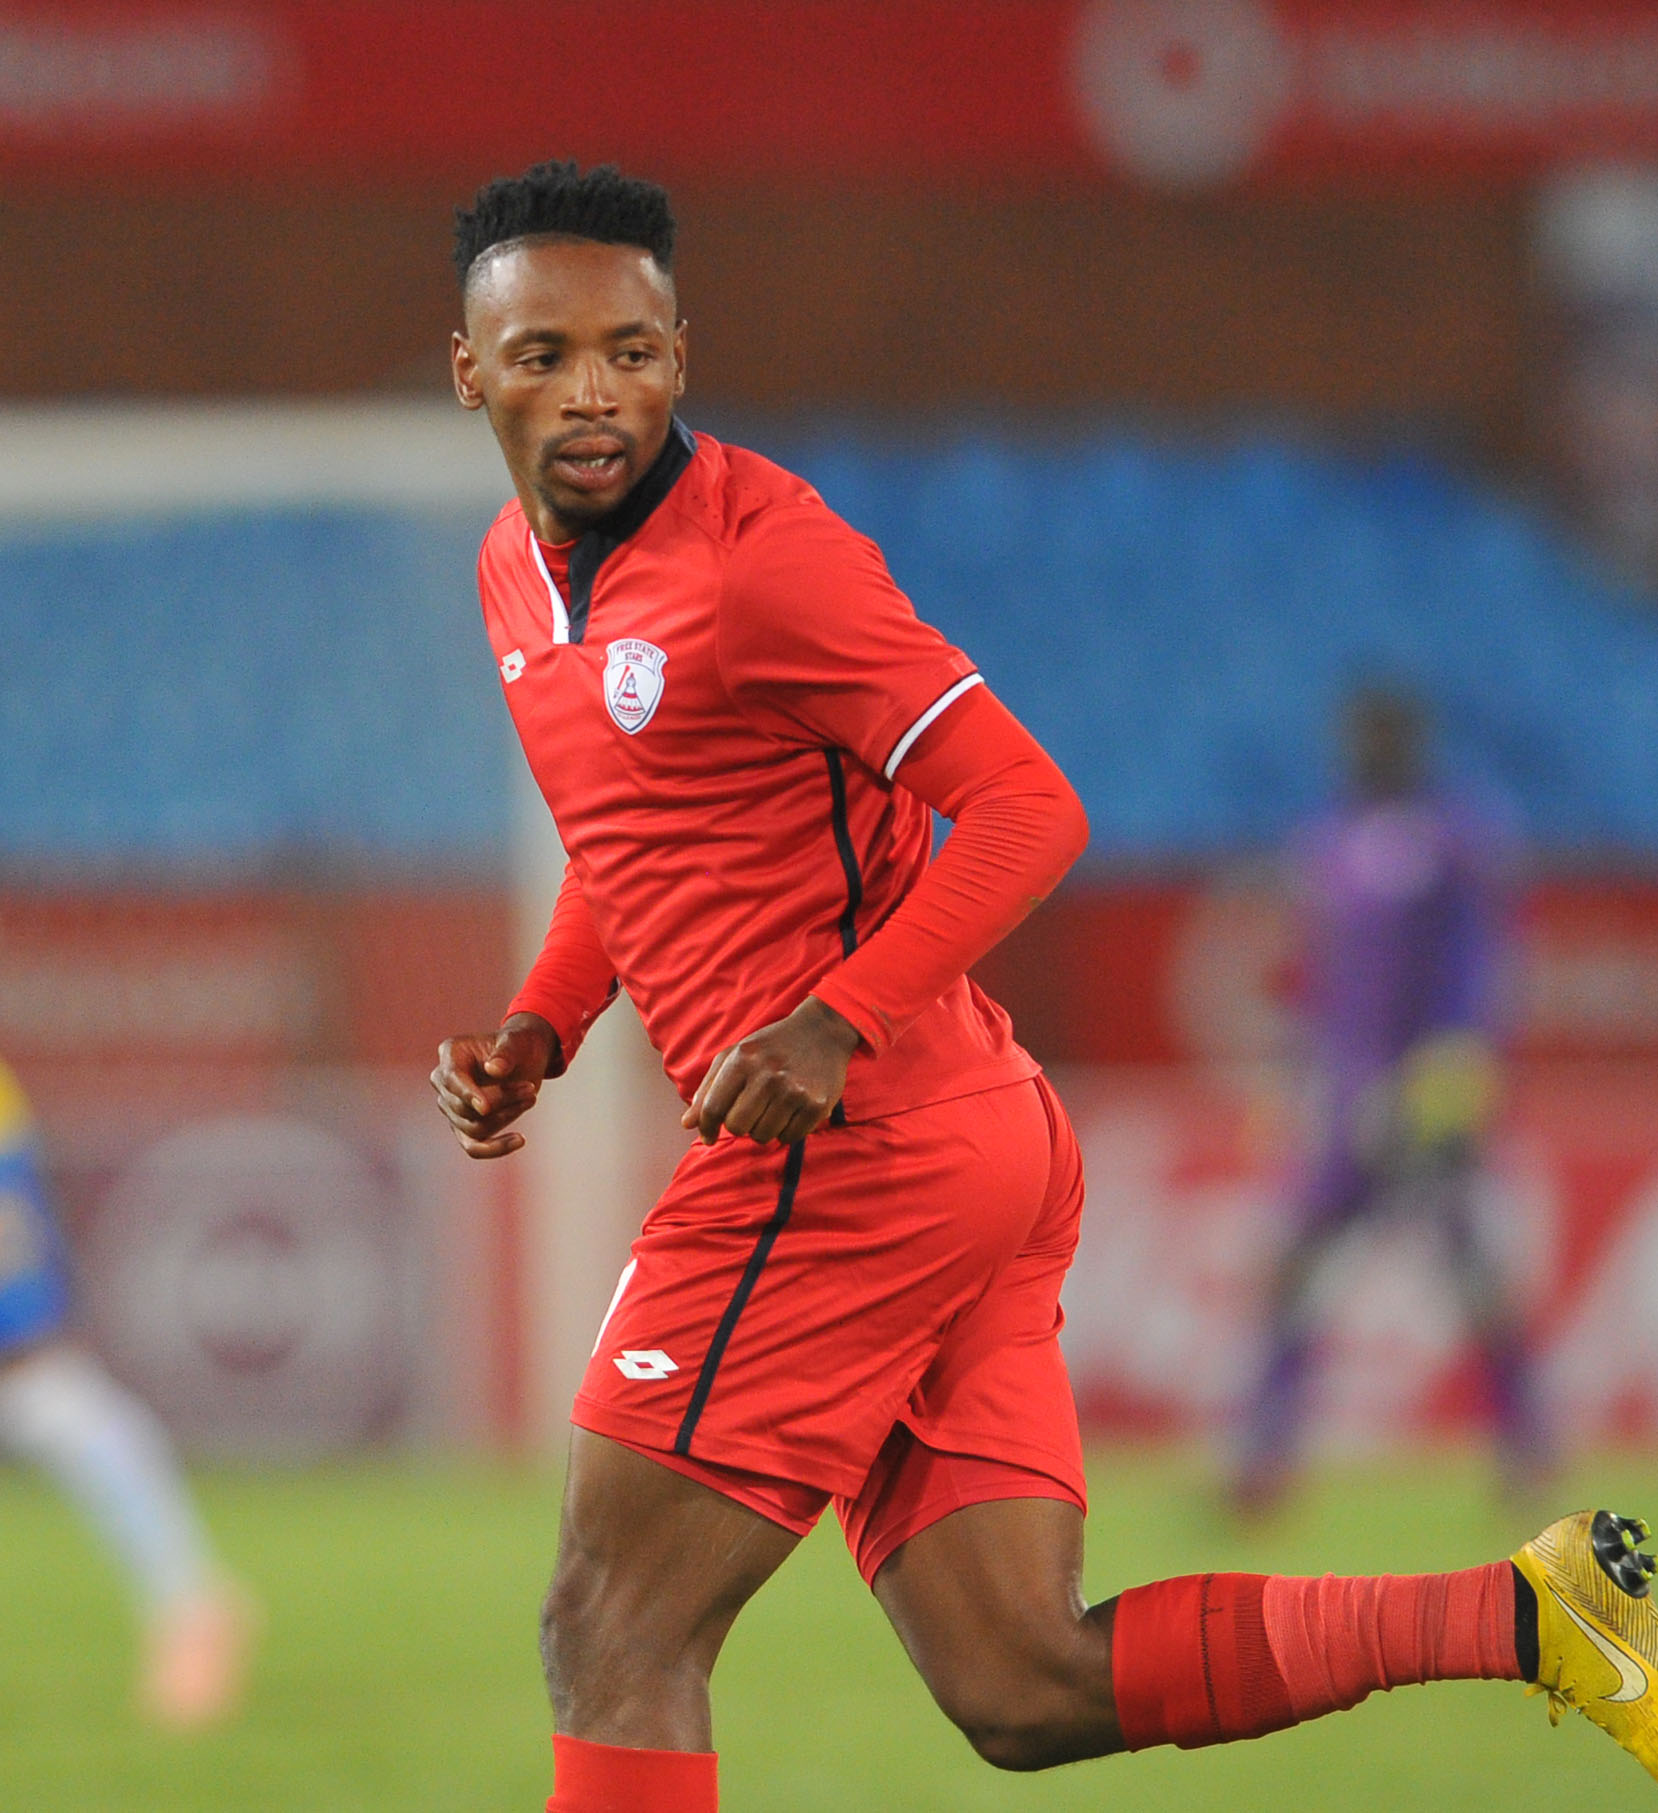 RIP Sinethemba Jantjie: Wits contract value, memorial service & funeral